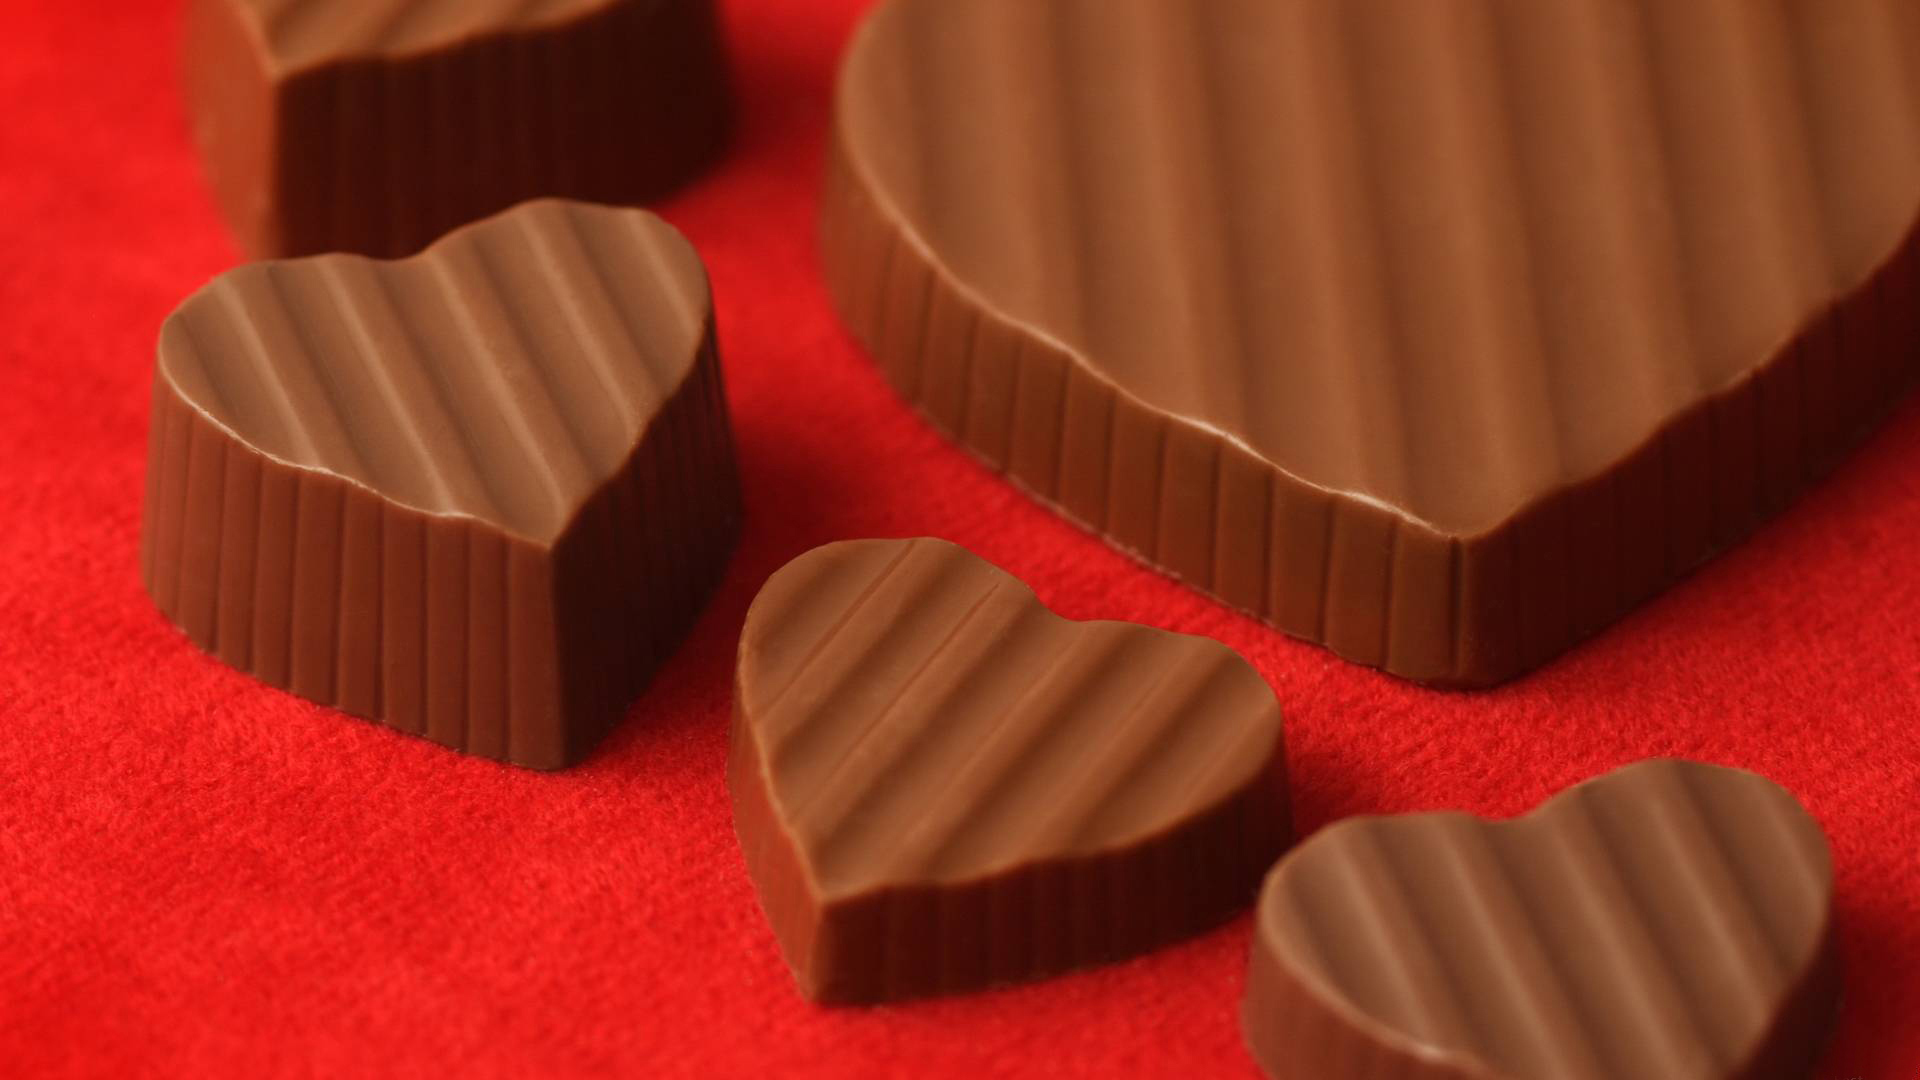 24747 download wallpaper Holidays, Food, Hearts, Chocolate, Valentine's Day screensavers and pictures for free